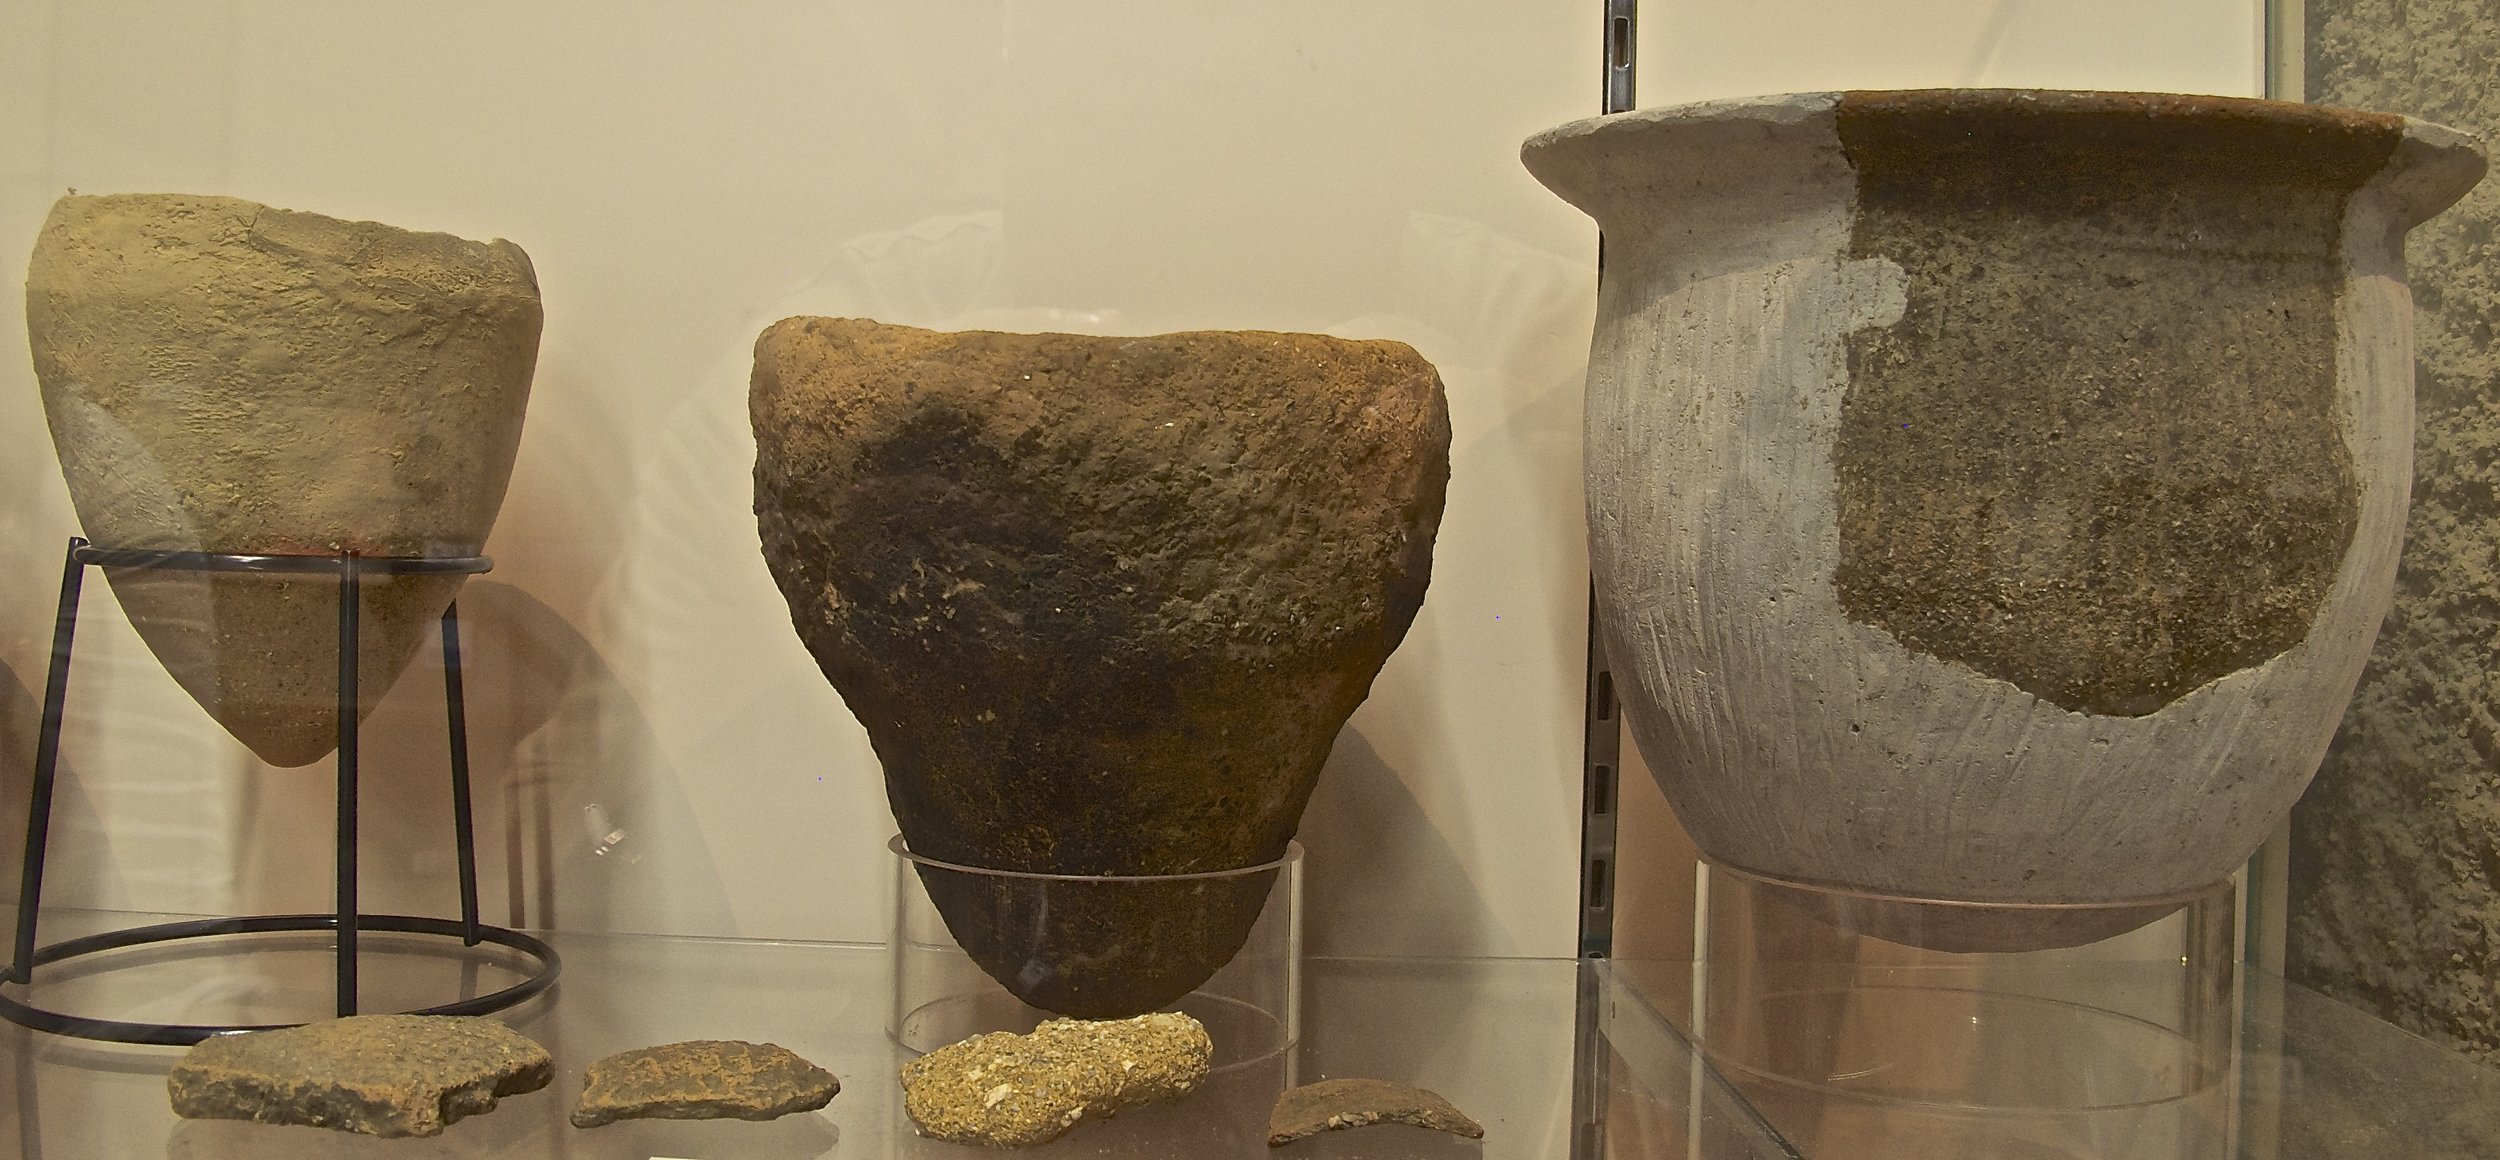 Moshio salt-making pots dating back to the 7th century that were found near the Amabito no Moshio salt house.